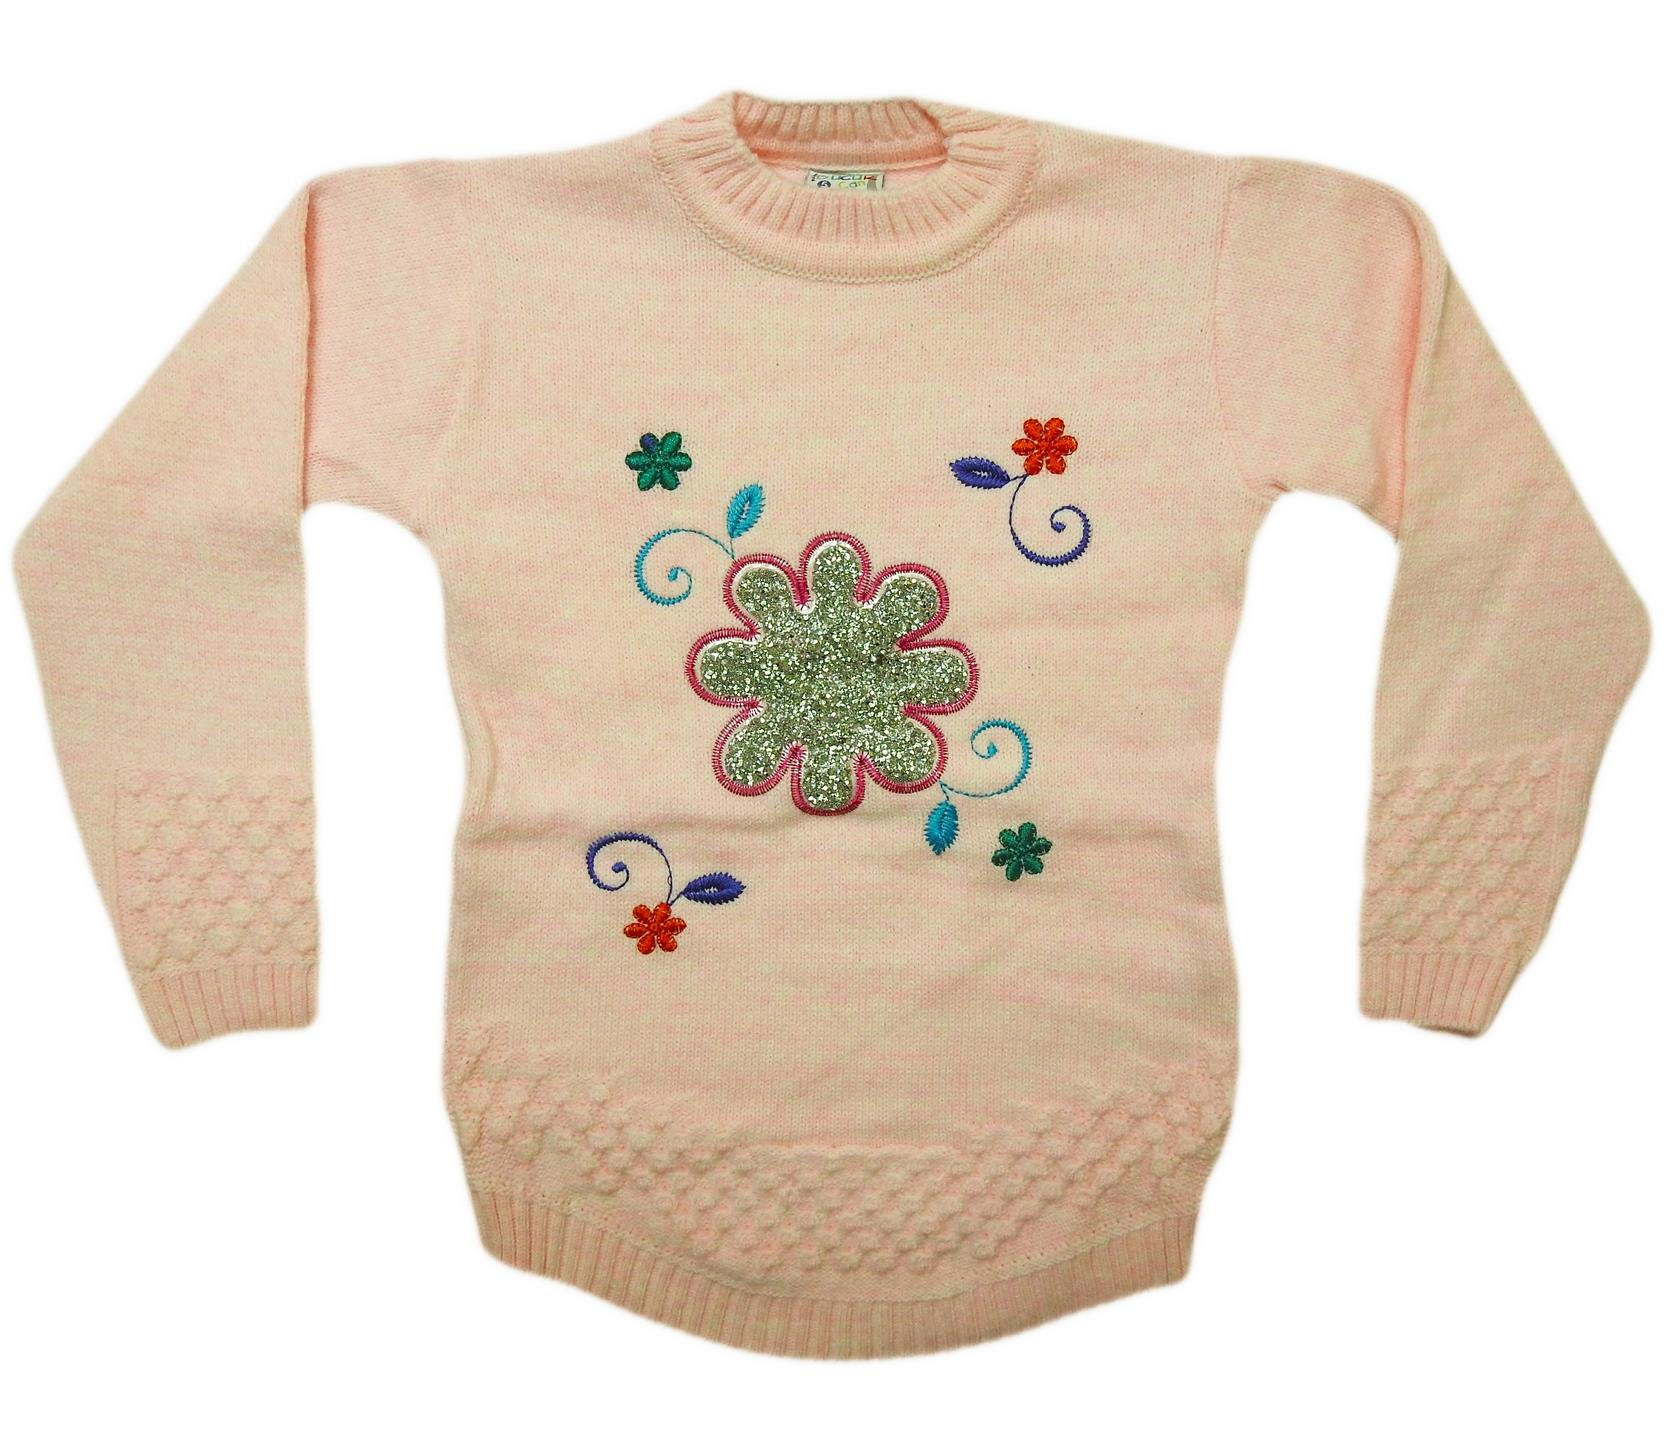 806 Wholesale quality and cheap sweater for girl babies 4-6-8 age